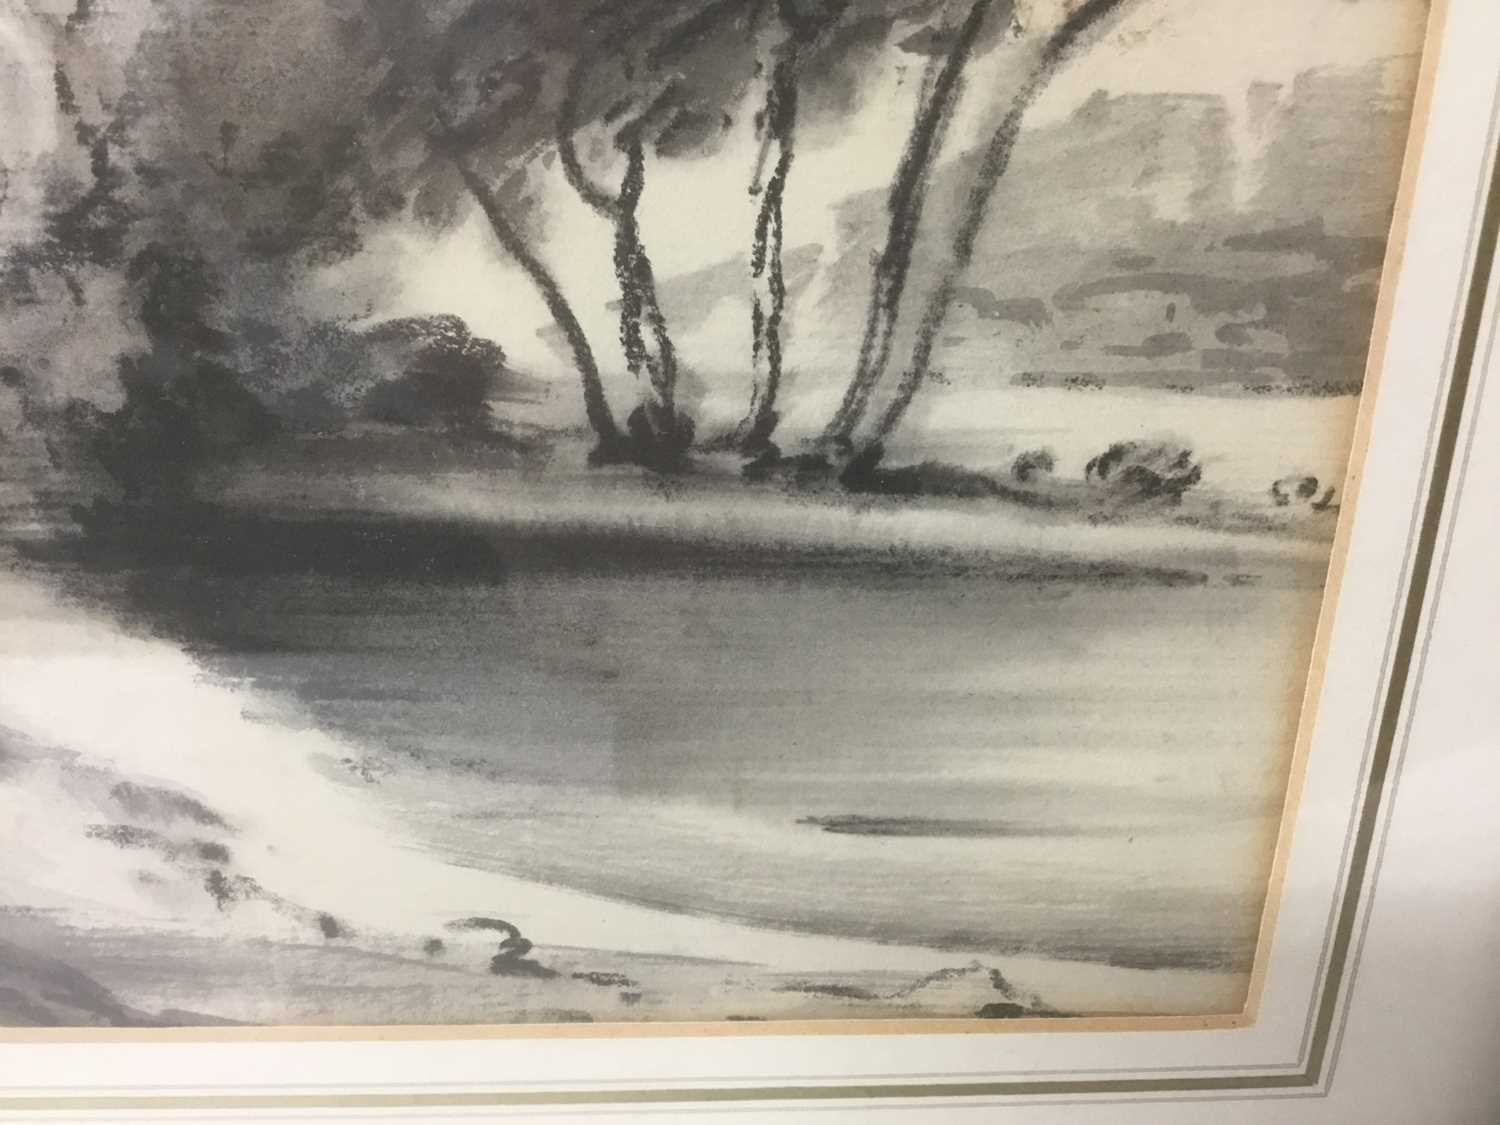 Thomas Monro (1759-1833) charcoal and wash - a landscape, in glazed gilt frame - Image 4 of 6